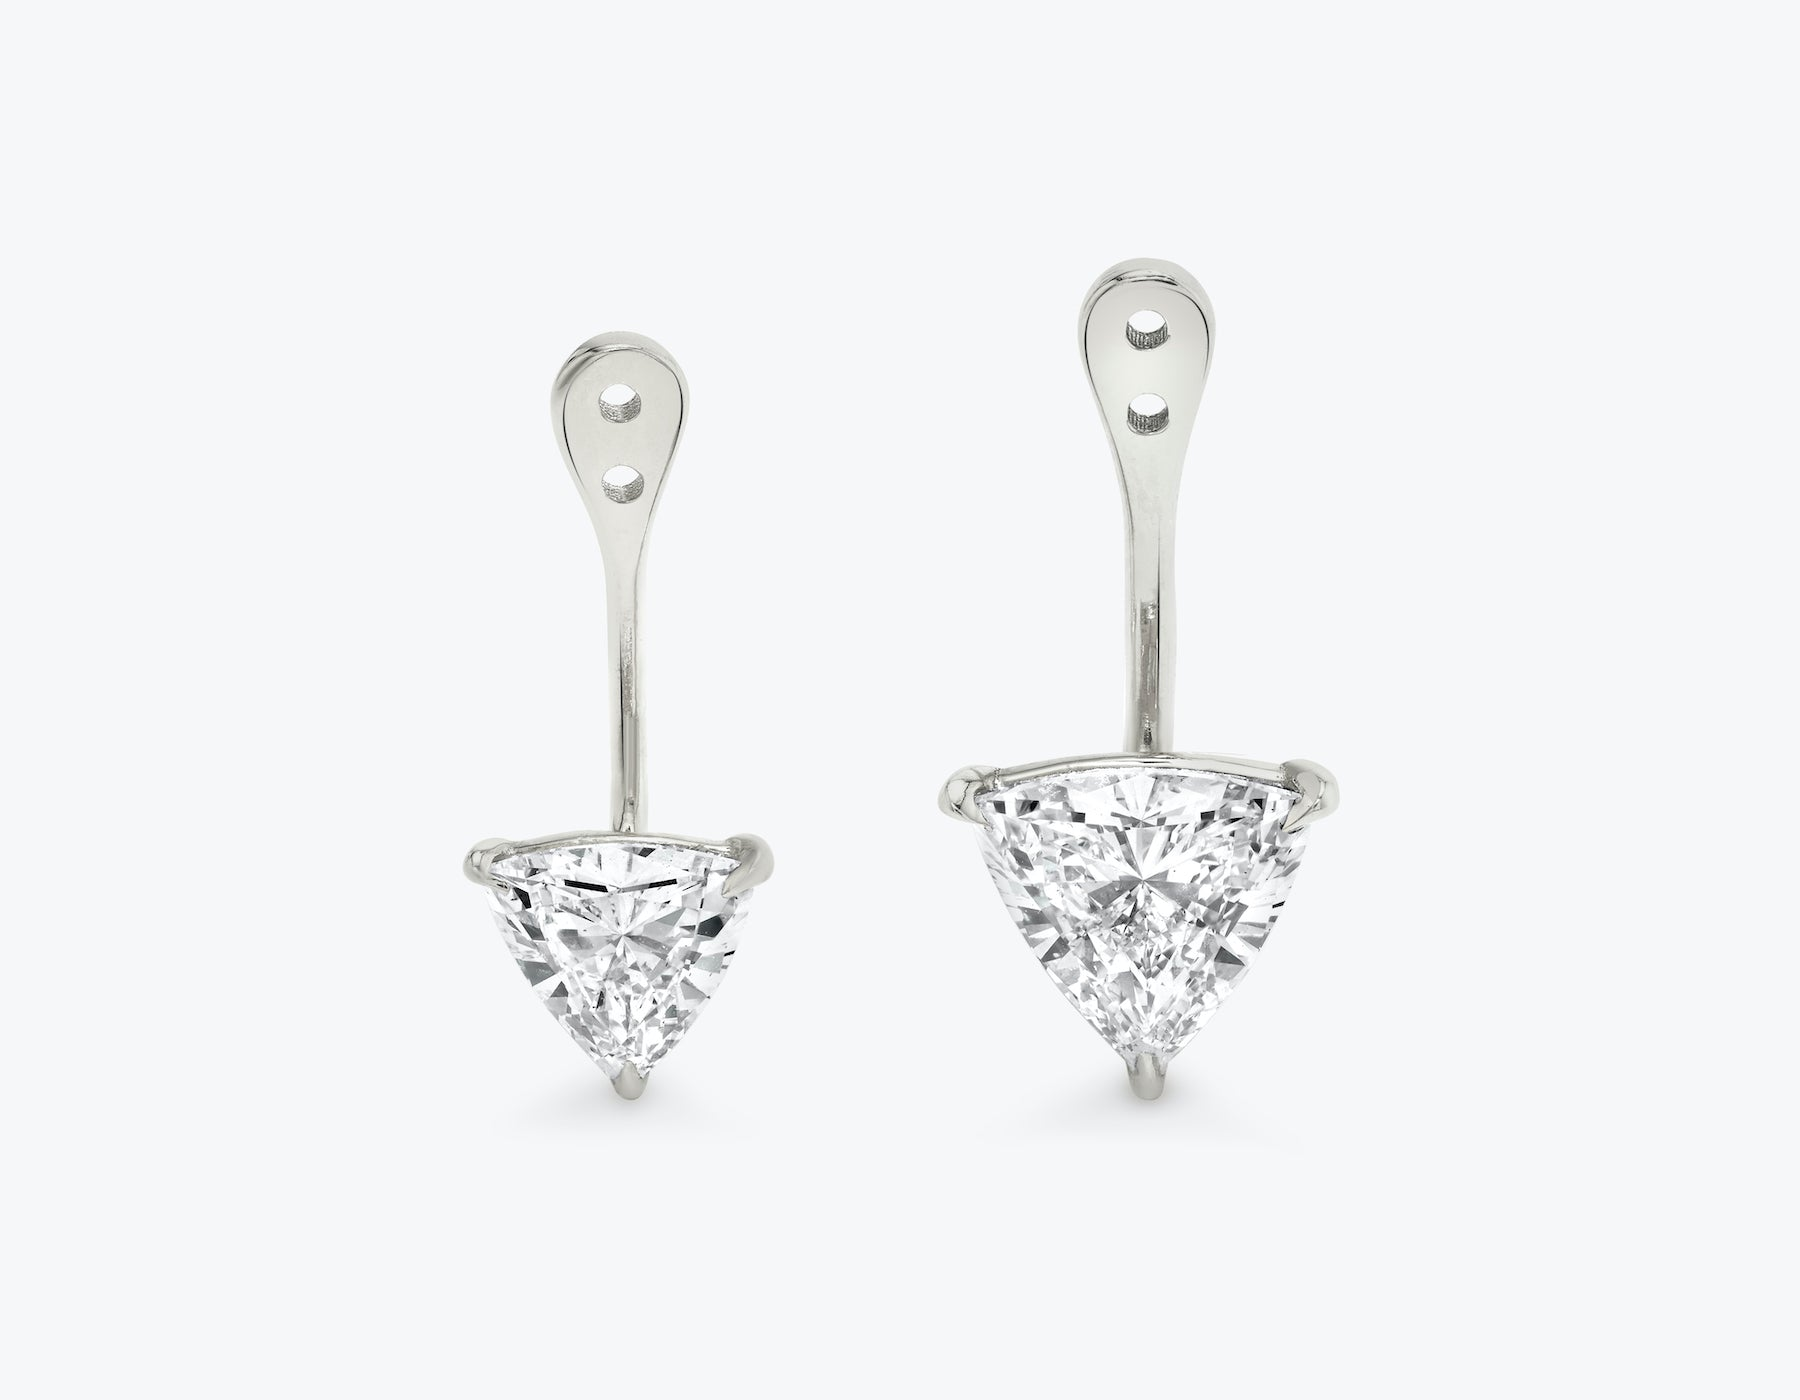 Vrai solitaire trillion diamond drop ear jackets made in 14k solid gold with sustainably created diamonds, 14K White Gold